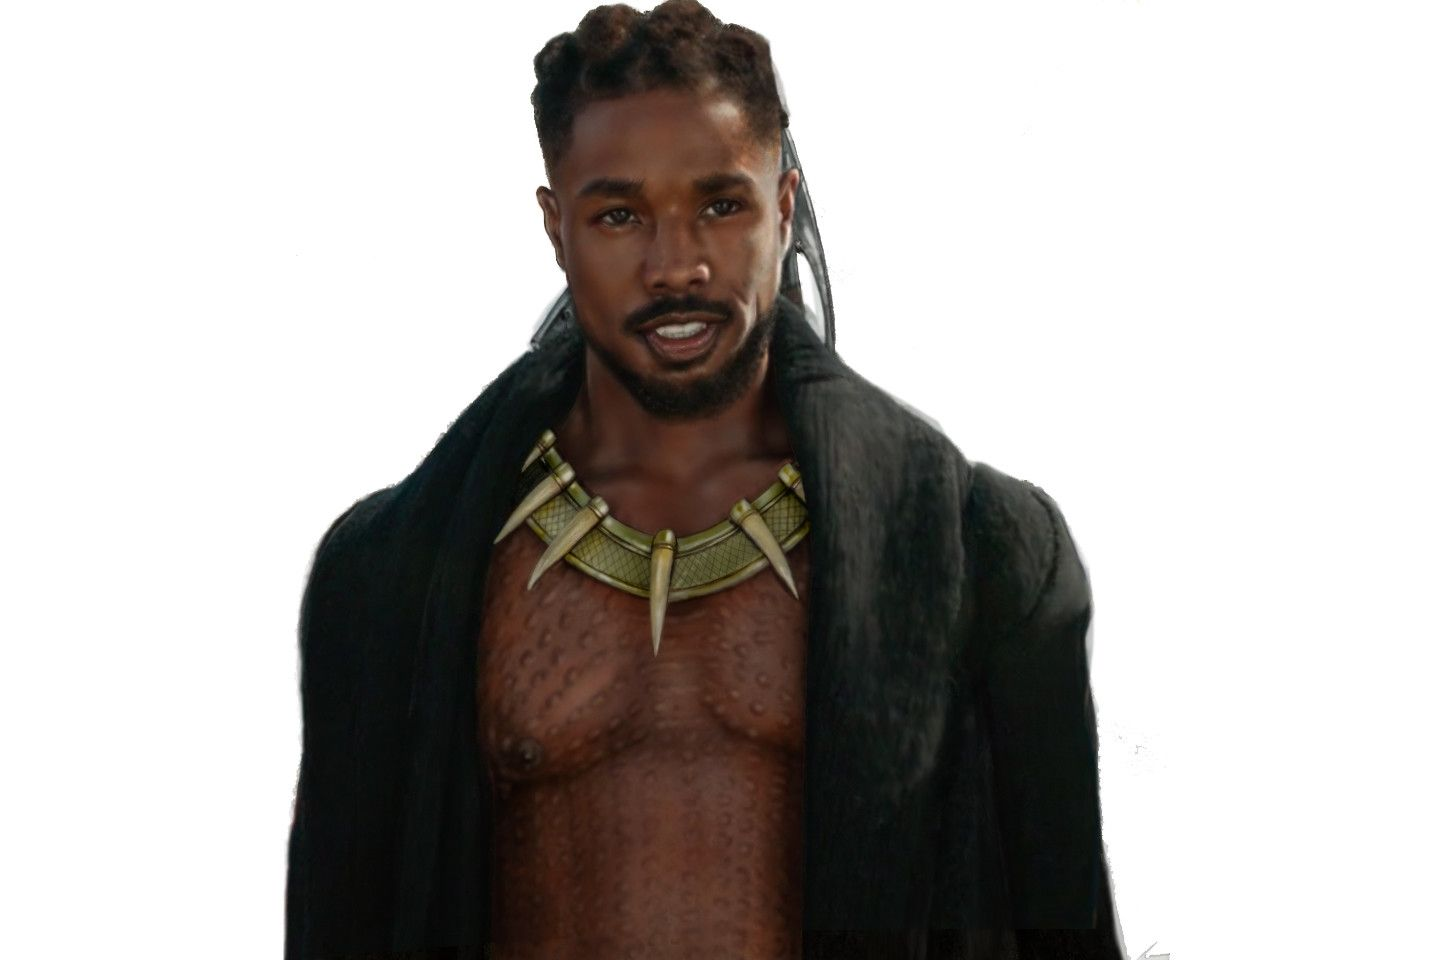 mcu killmonger art black panther pinterest black panther panther and black panther comic. Black Bedroom Furniture Sets. Home Design Ideas